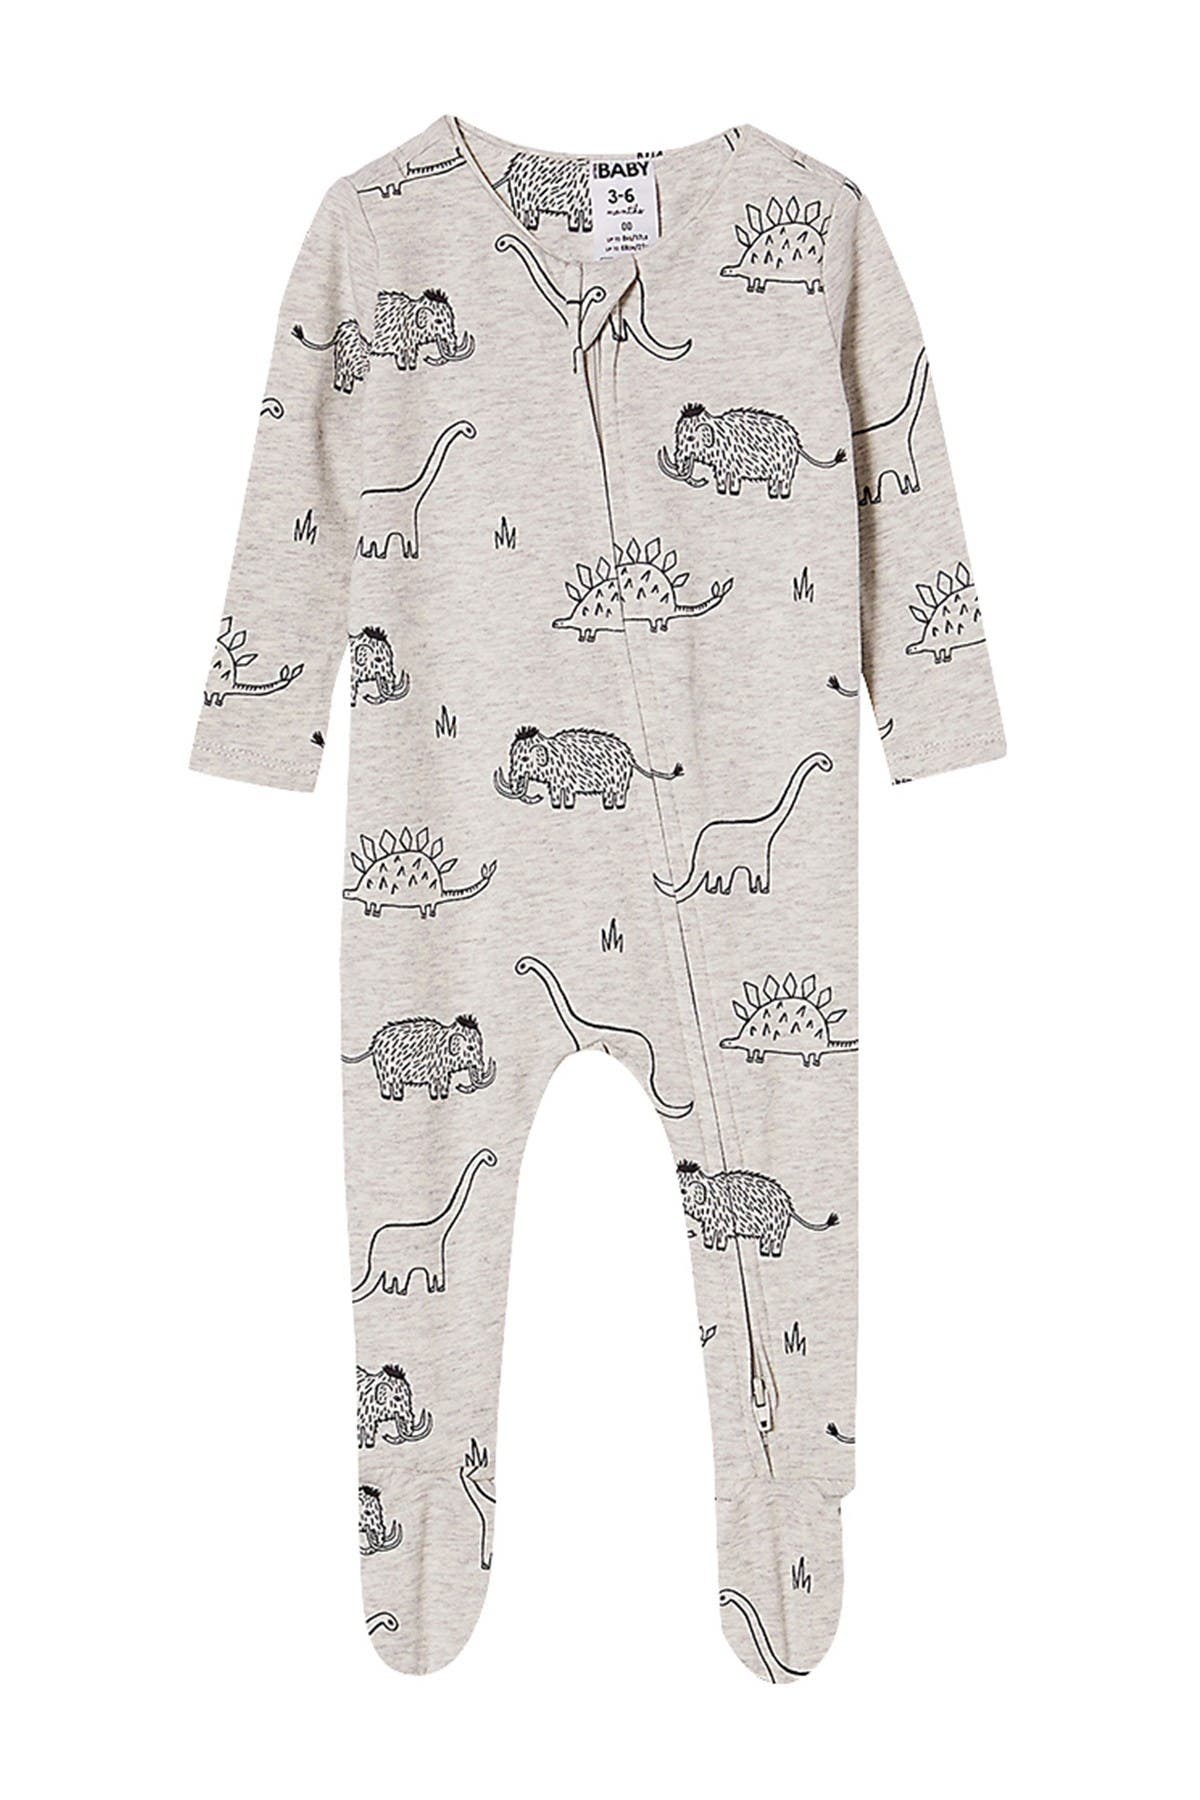 Image of Cotton On The Snug Long Sleeve Zip Romper